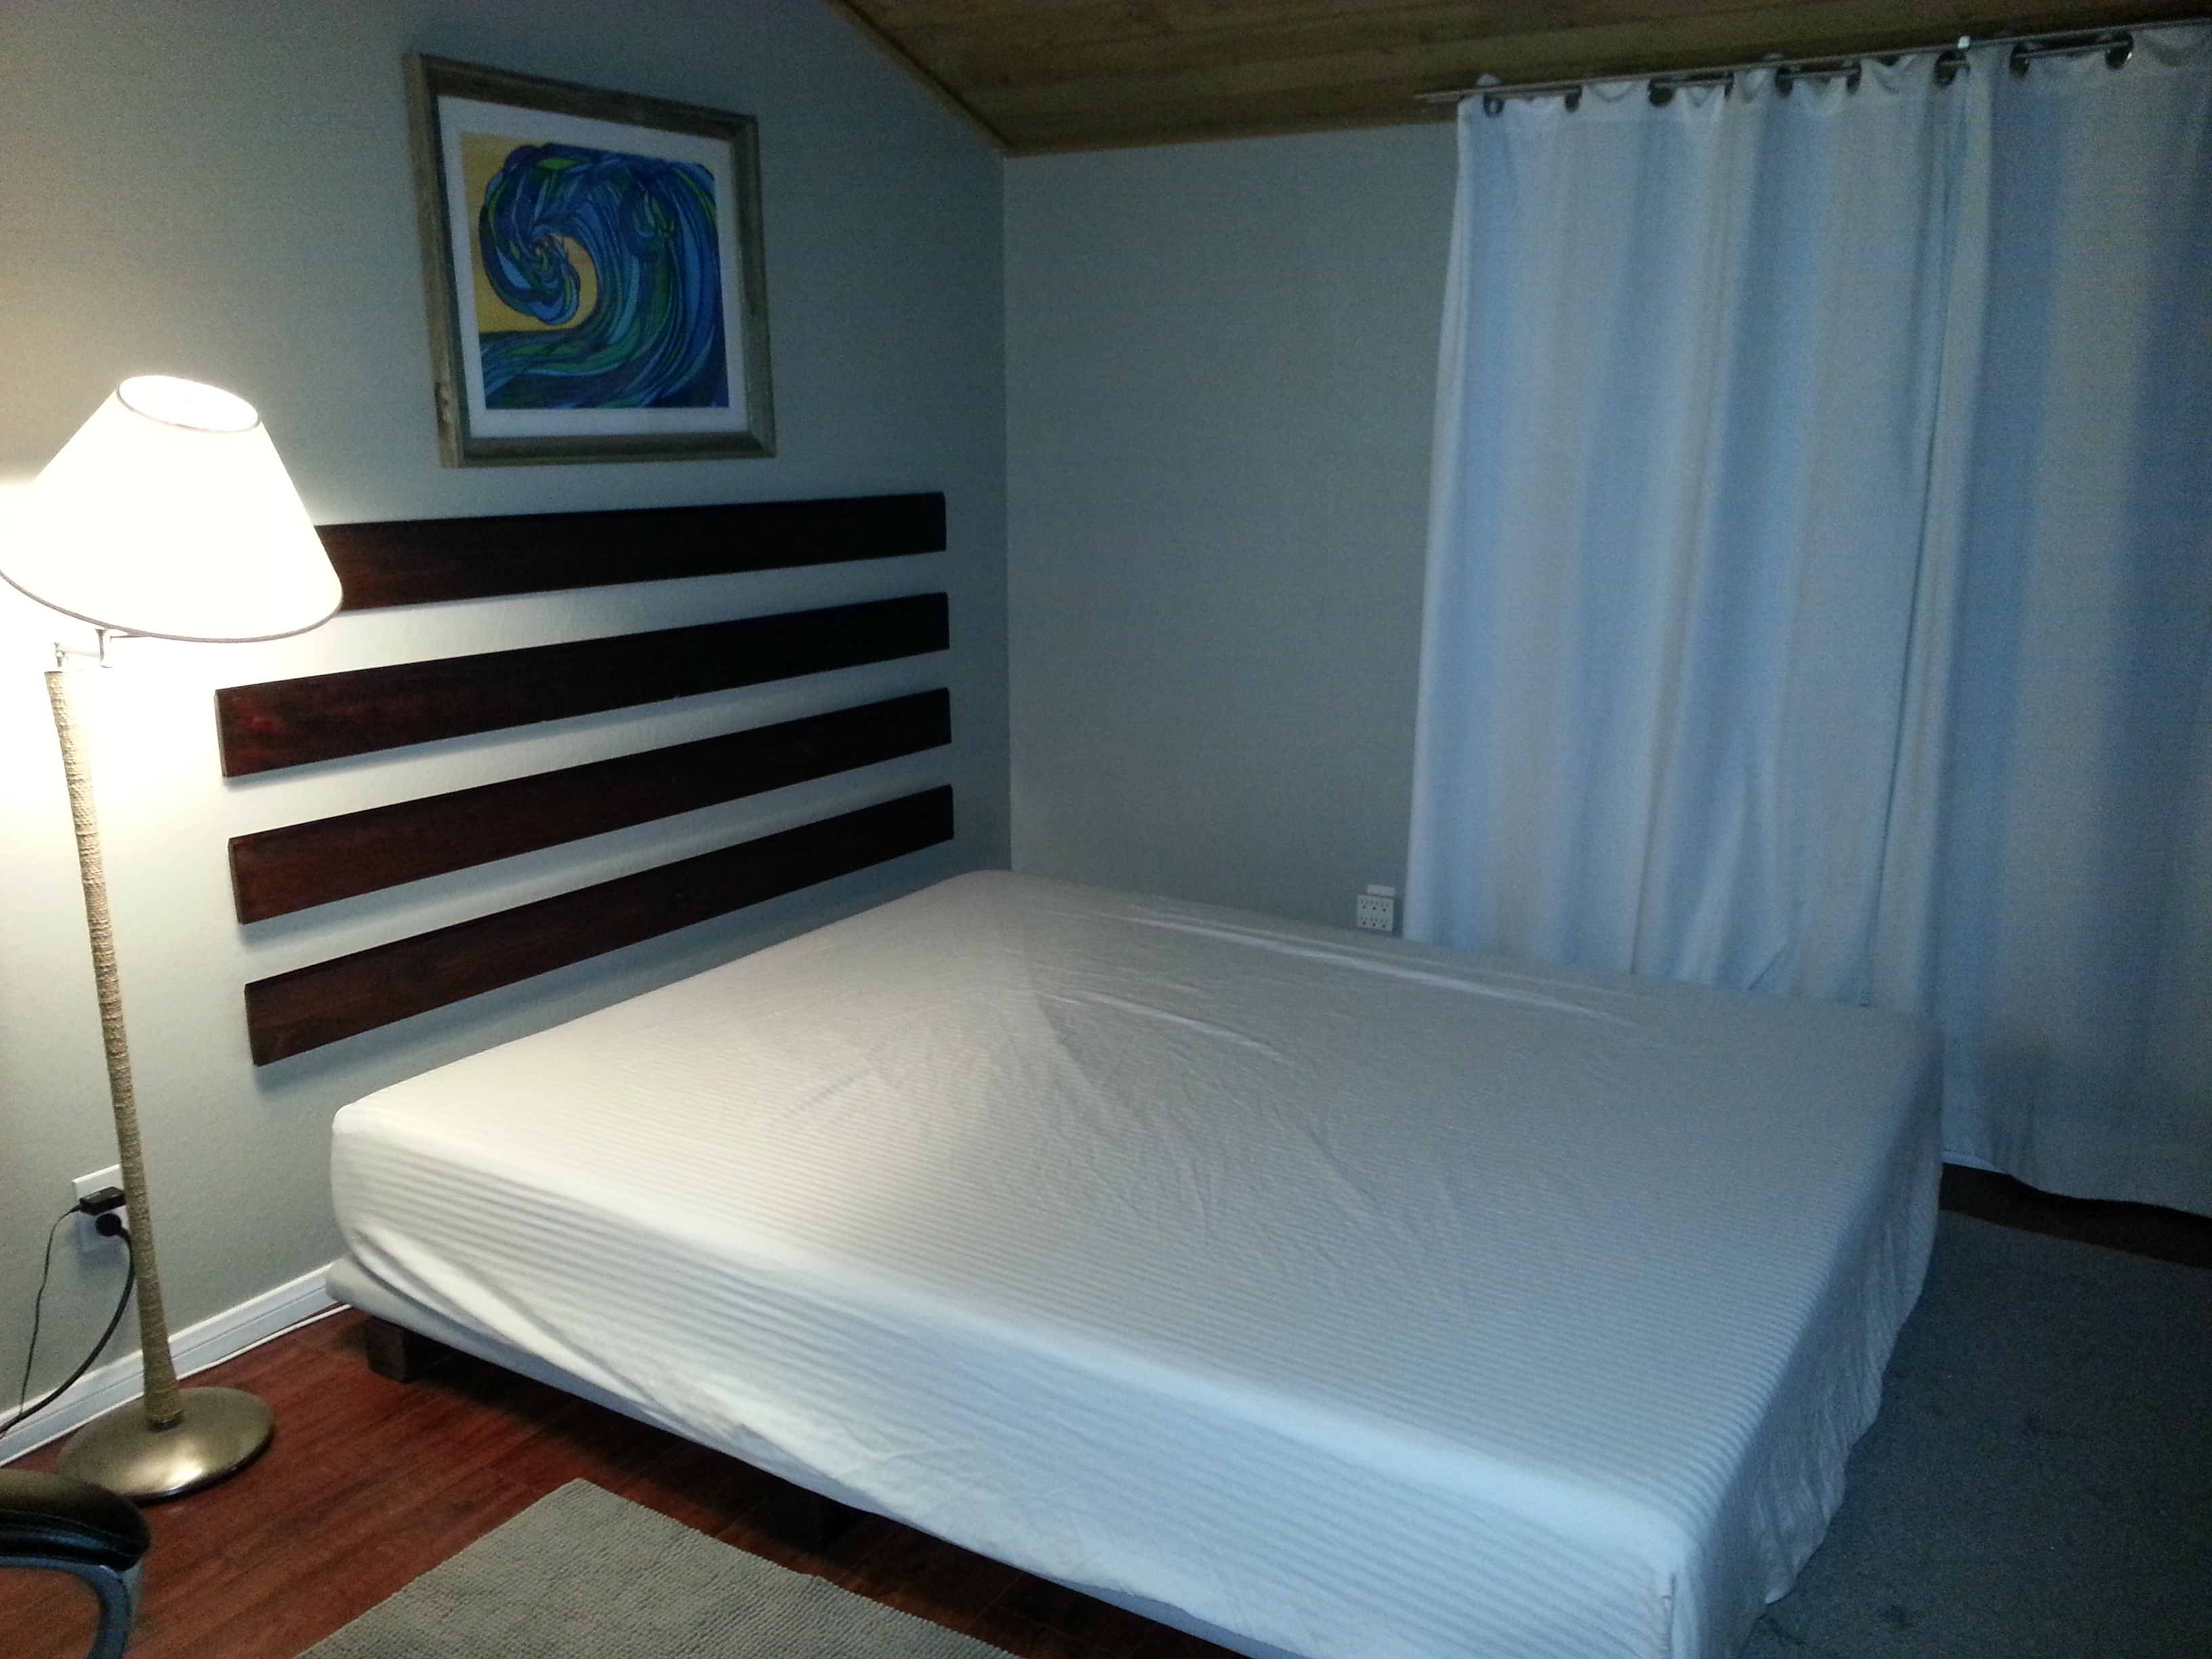 Floating Bedroom Diy How To Make A Floating Headboard For Cheap And Easy